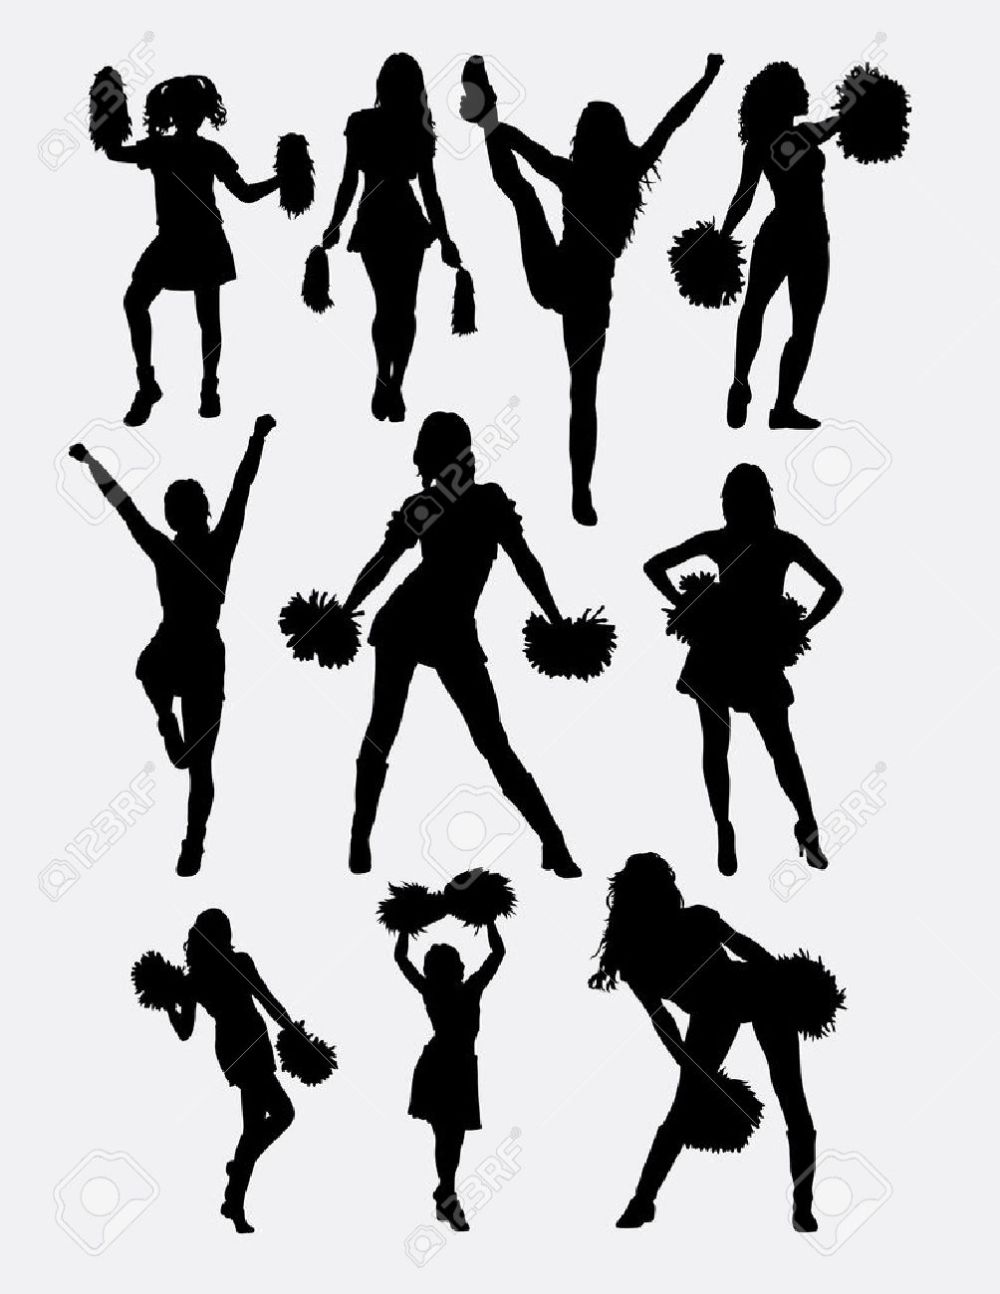 medium resolution of girl cheerleader pose silhouette good use for symbol logo web icon character